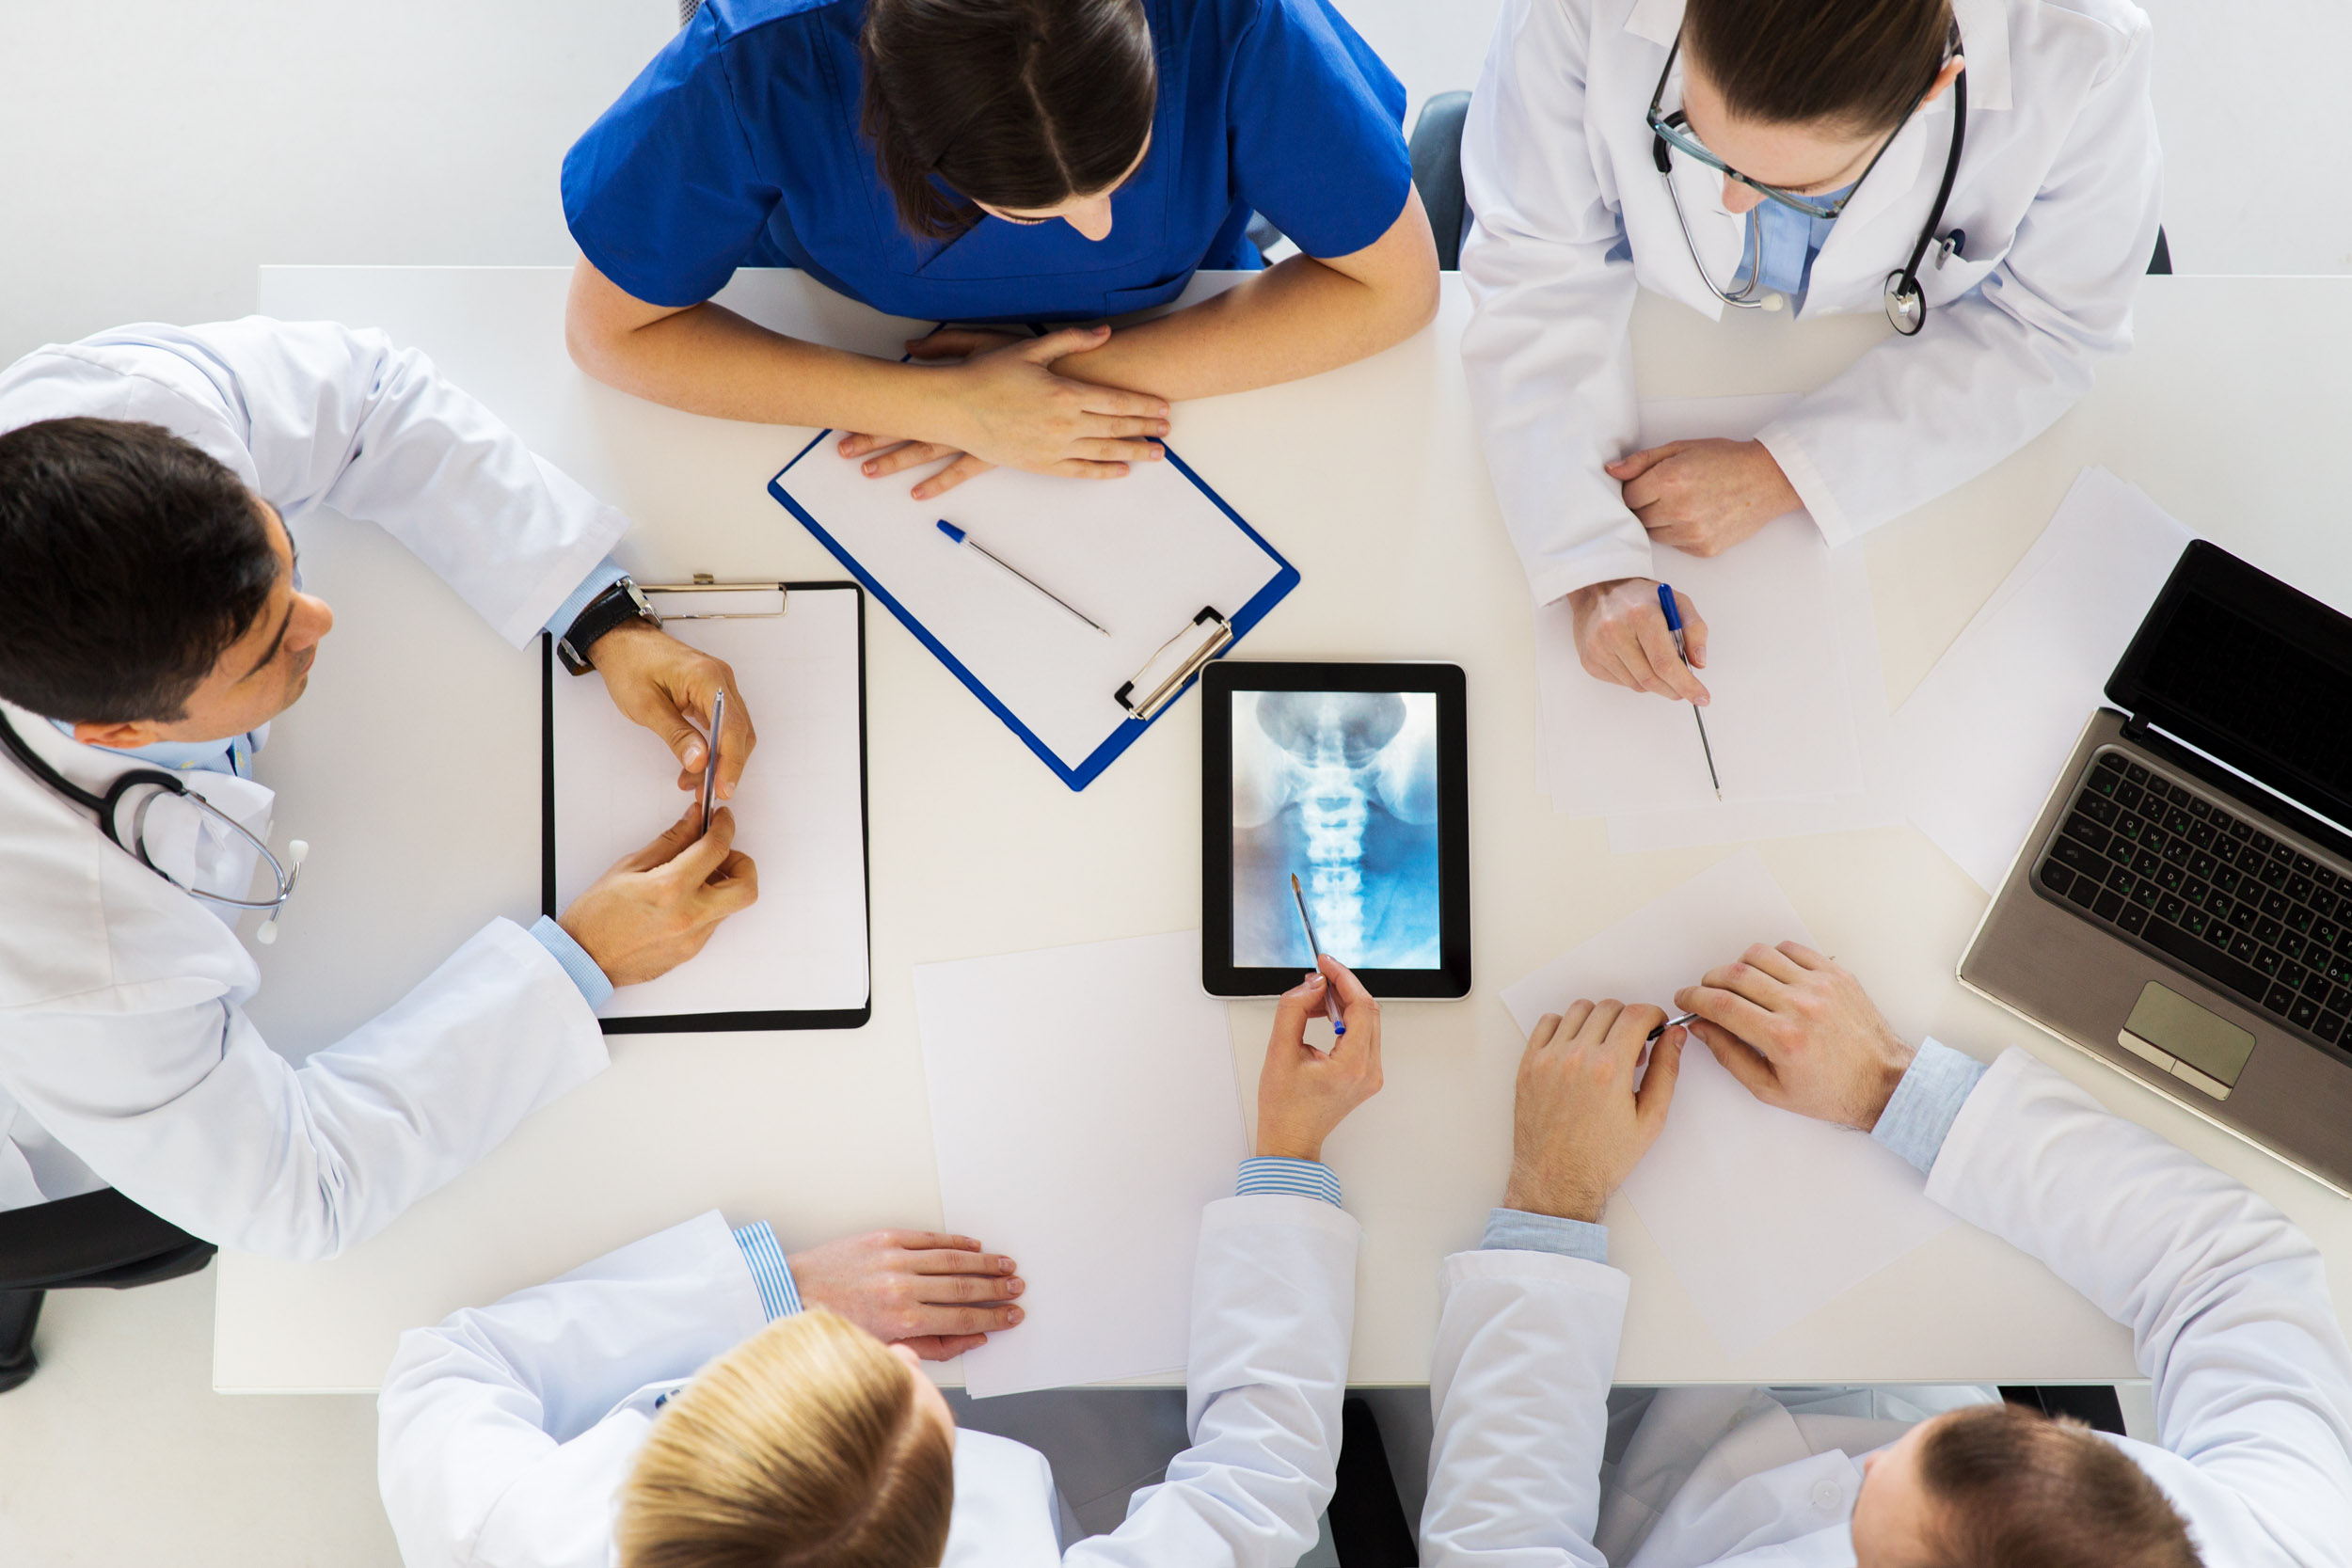 Position yourself with the future - Be a part of our distribution family. Together, we can achieve Curiteva's mission to provide innovative spinal implant systems to improve patient outcomes and simplify surgical procedures for surgeons.